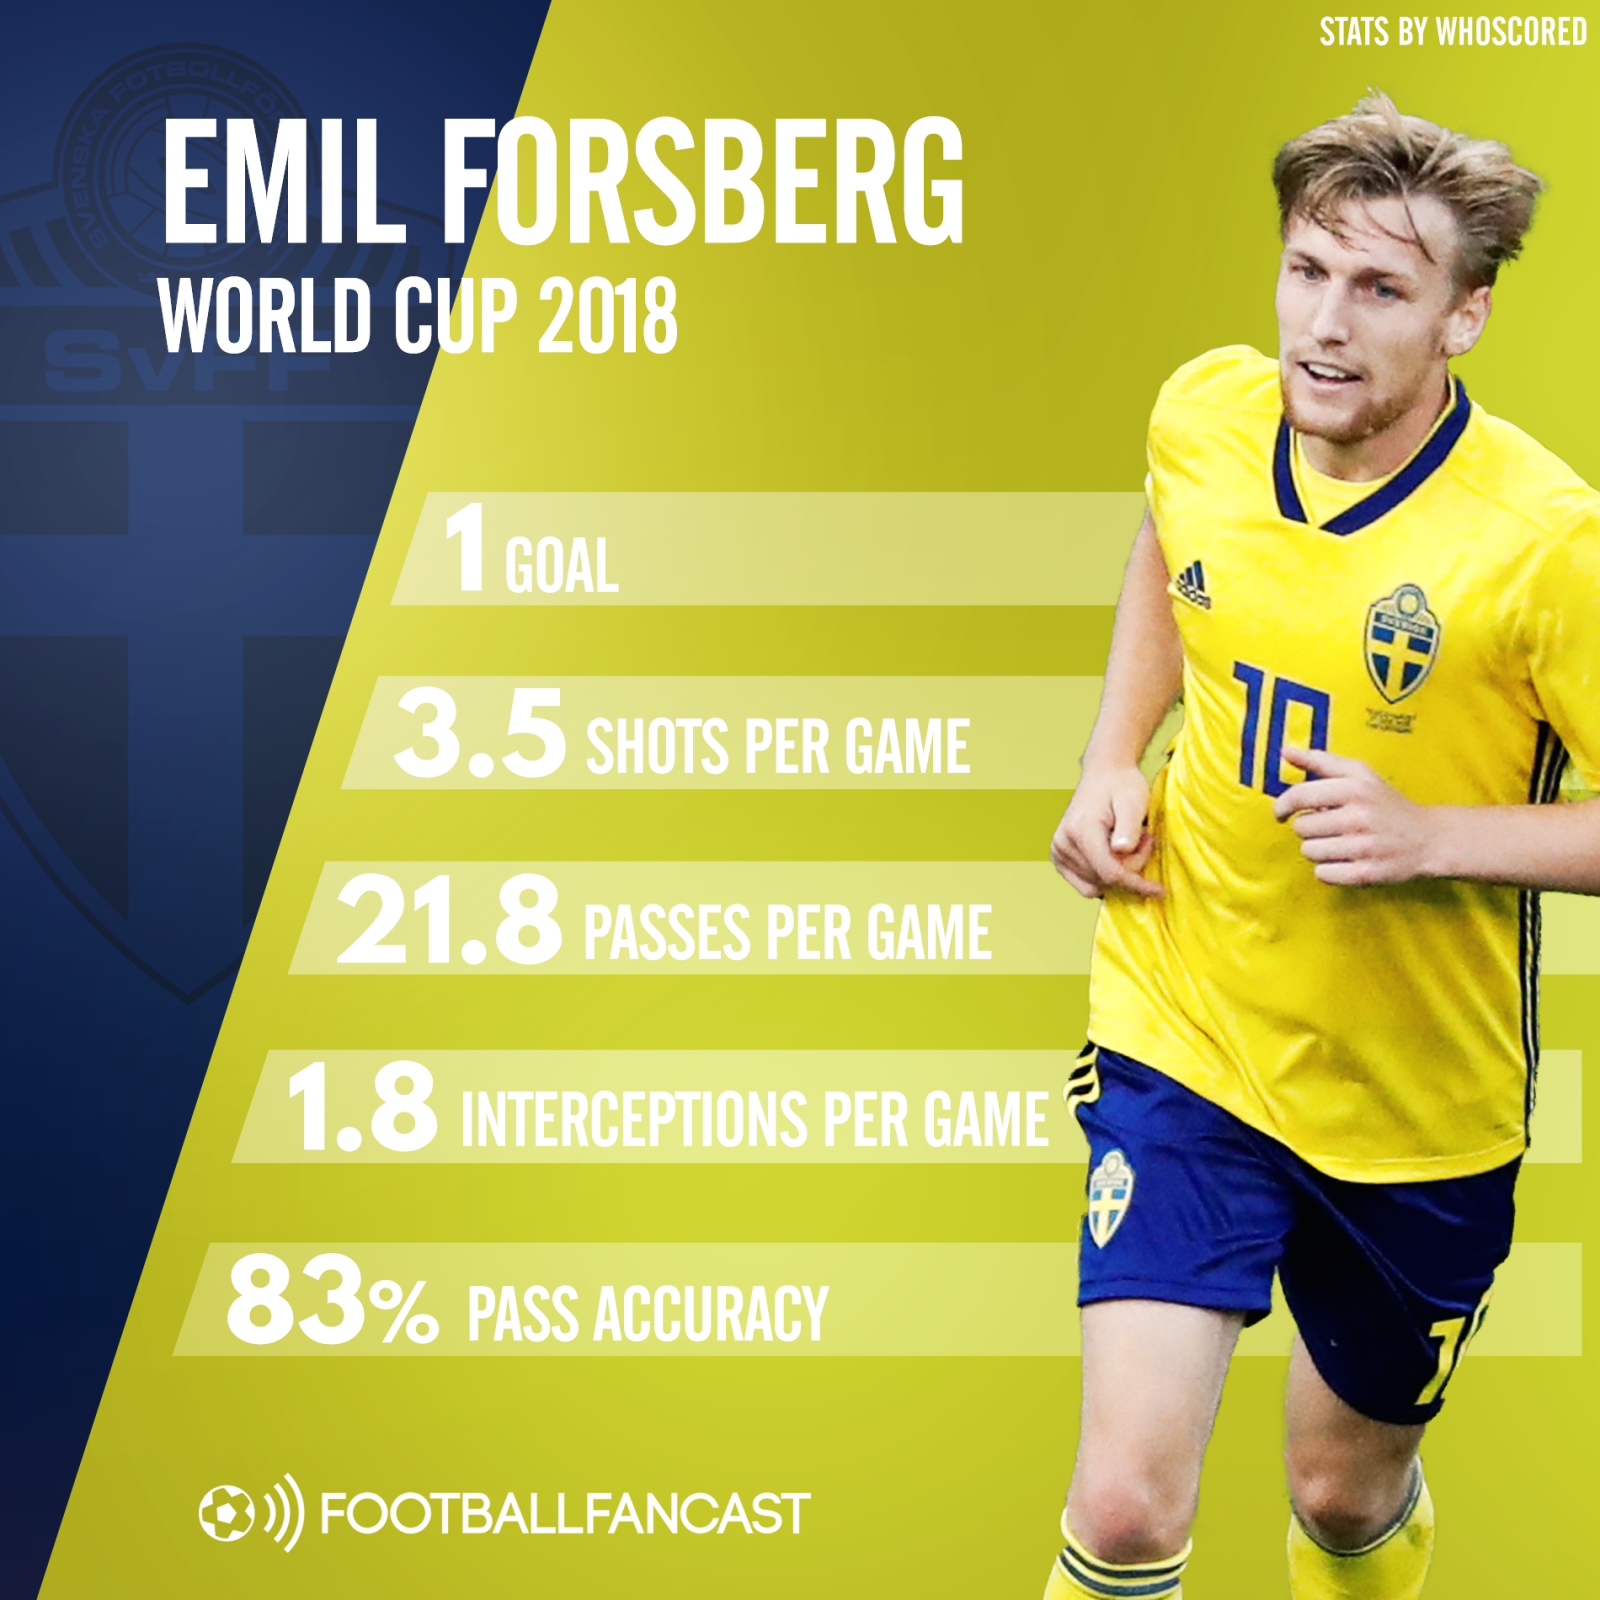 Emil Forsberg's stats from 2018 World Cup